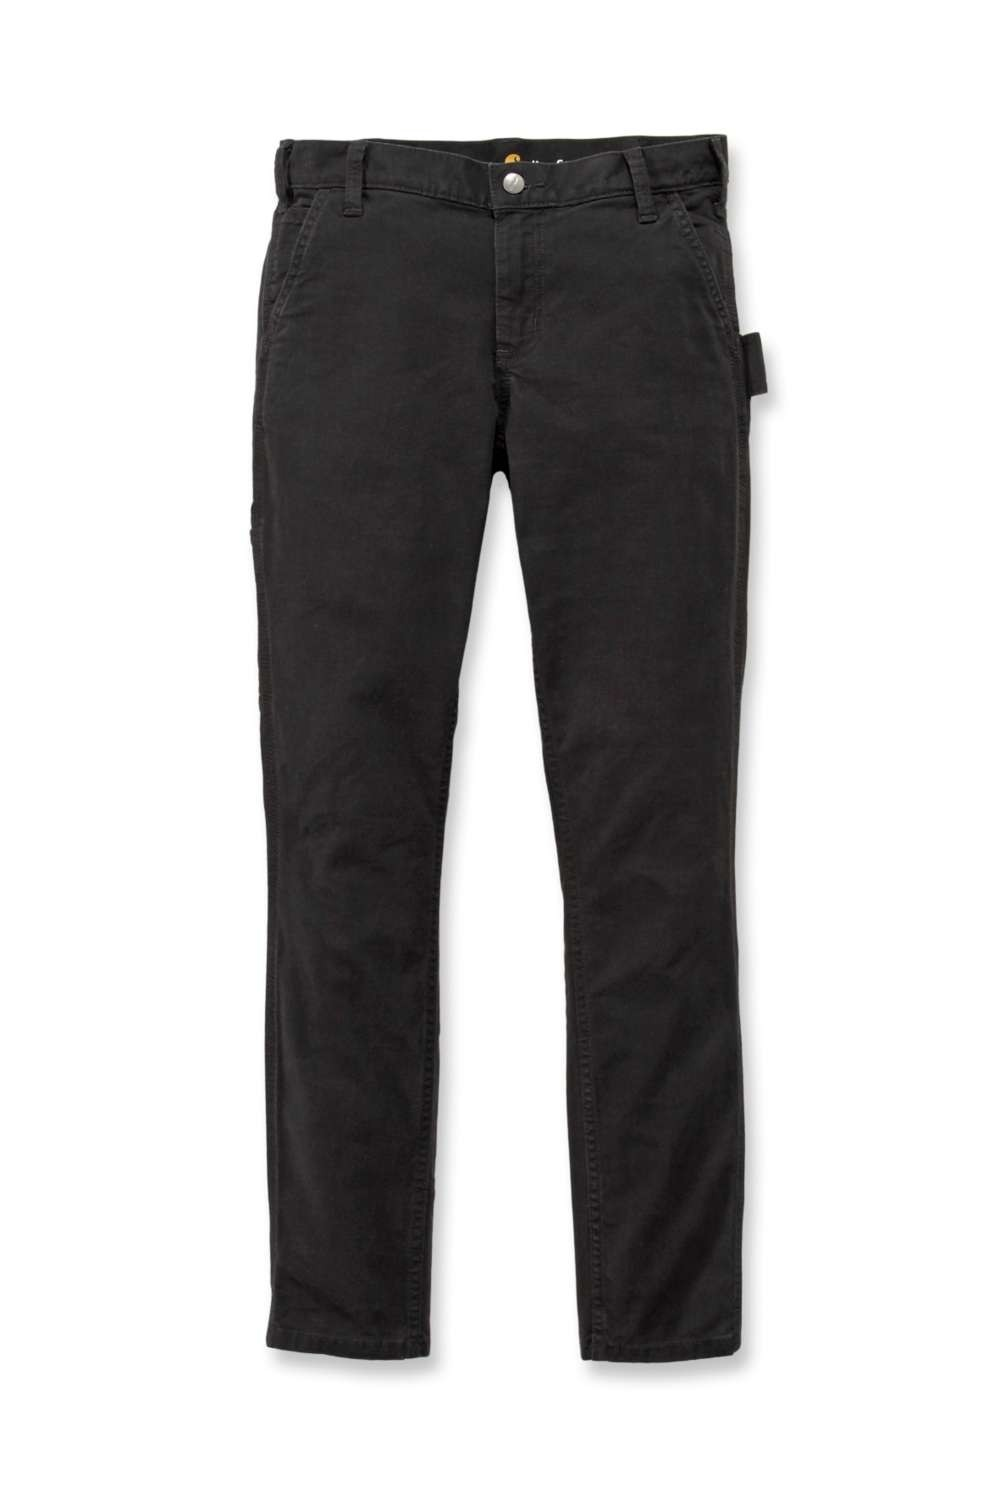 Carhartt Womens Slim-Fit Carpenter Pants: Black